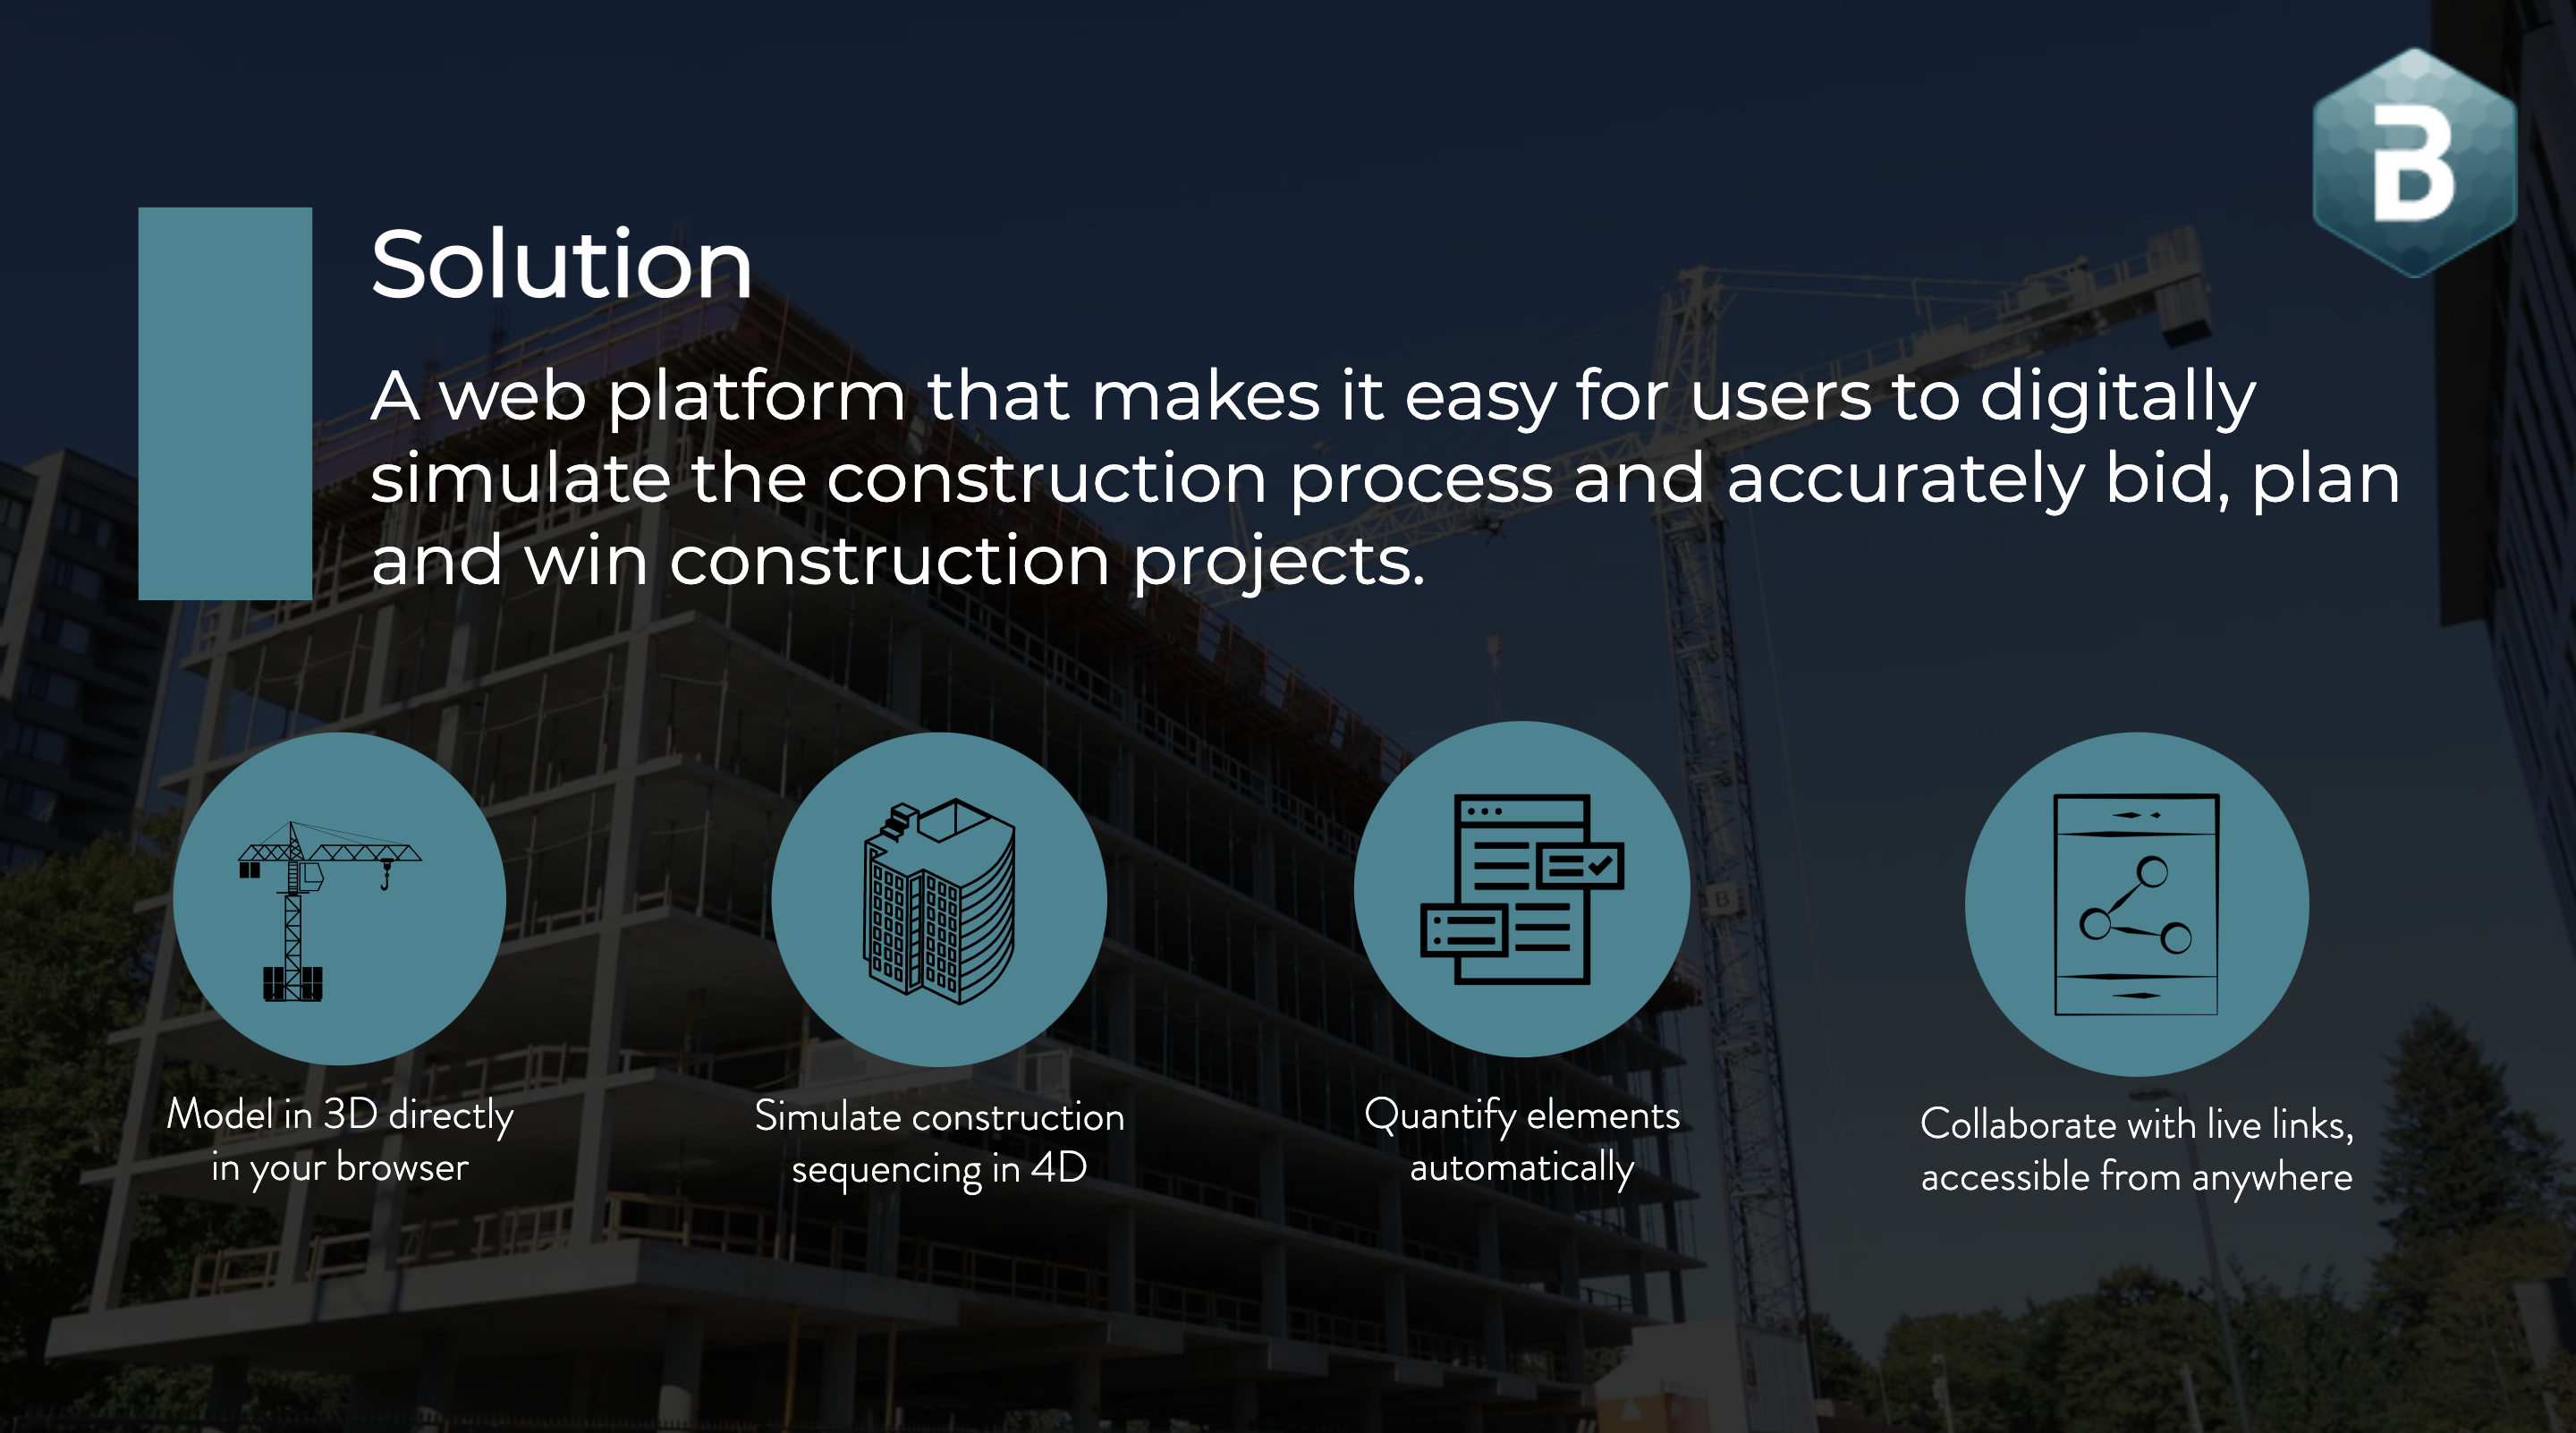 Solution:A web platform that makes it easy to digitally simulate the construction process and accurately bid, plan and win construction projects. cmBuilder.io